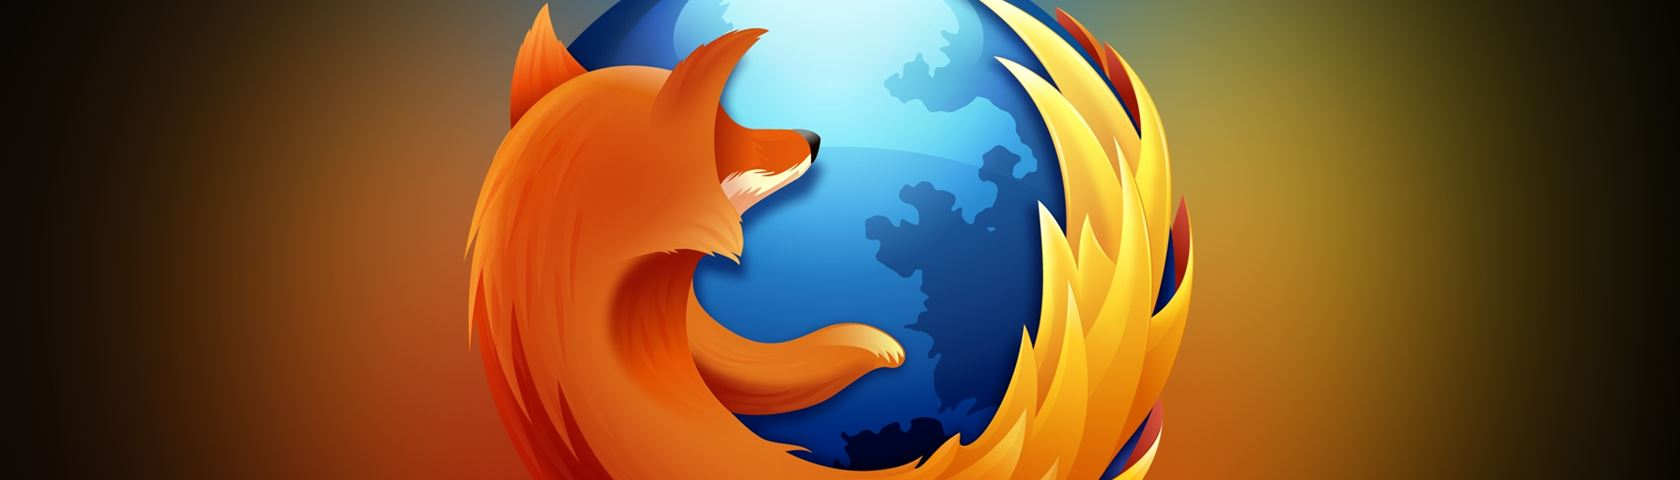 Mozilla Firefox Wallpaper 2